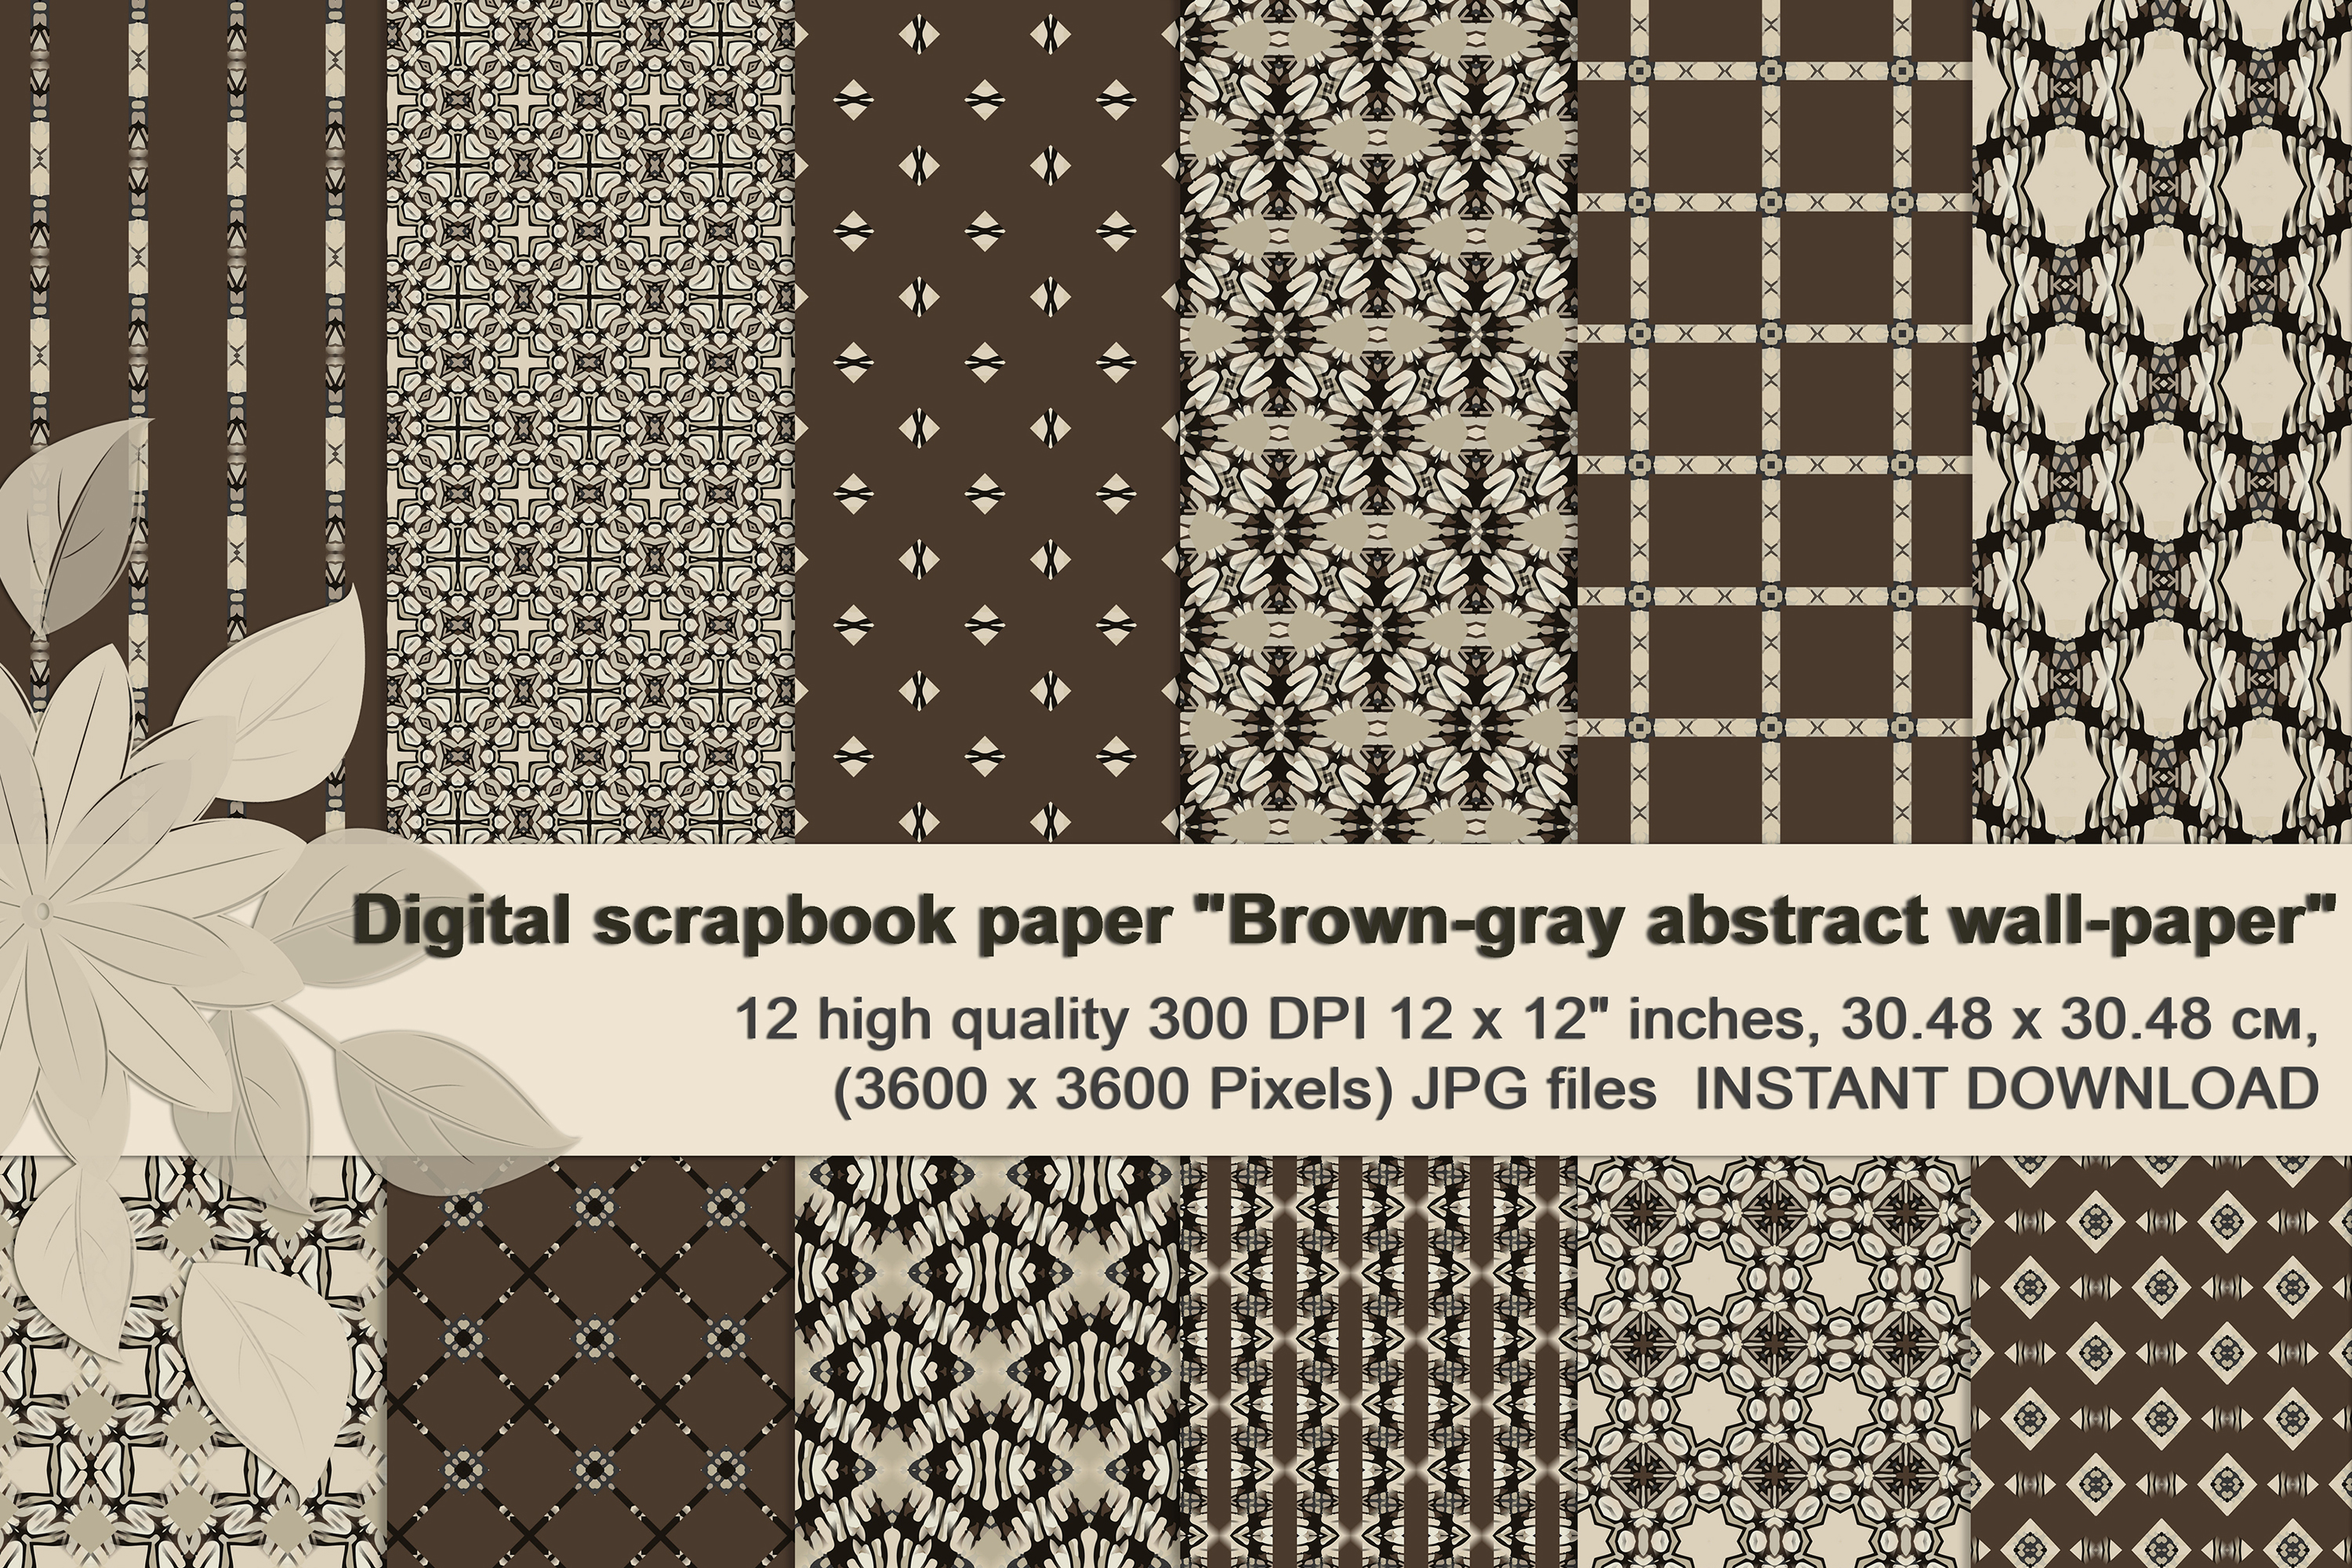 Brown-Gray abstract Digital Scrapbook Paper example image 1